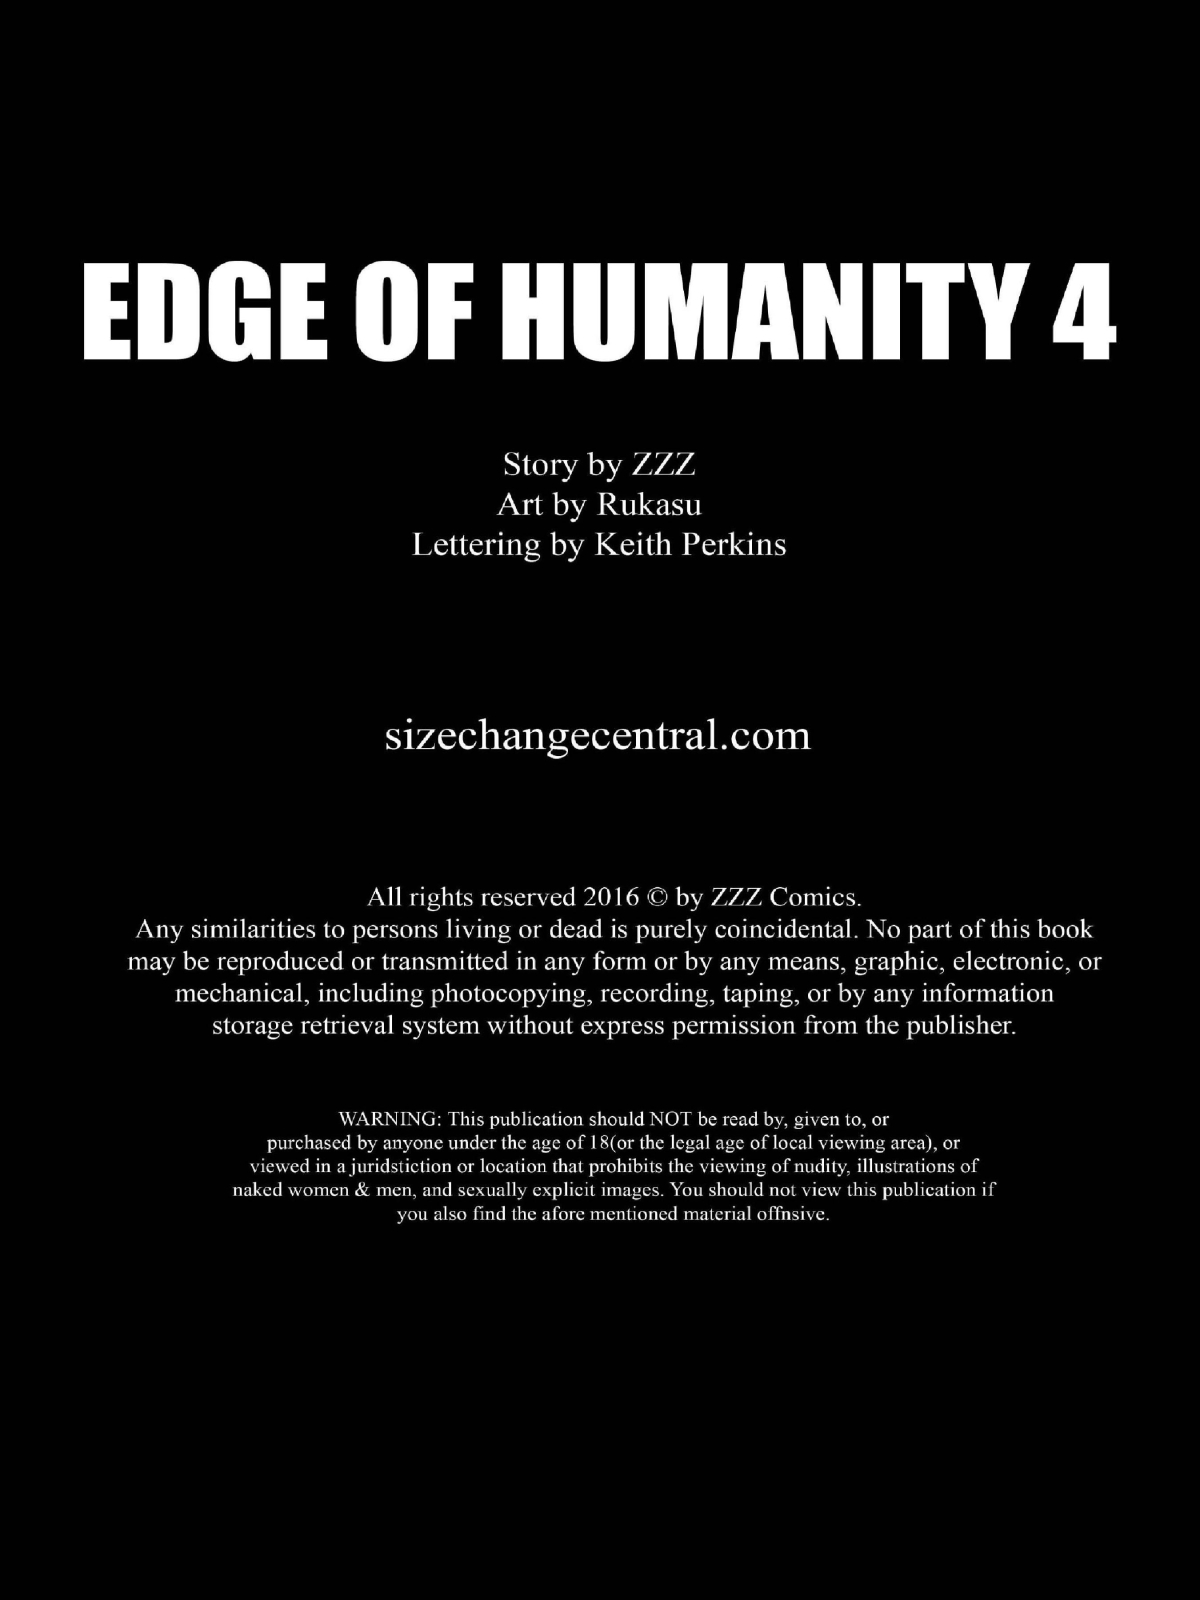 ZZZ- Edge of Humanity 4